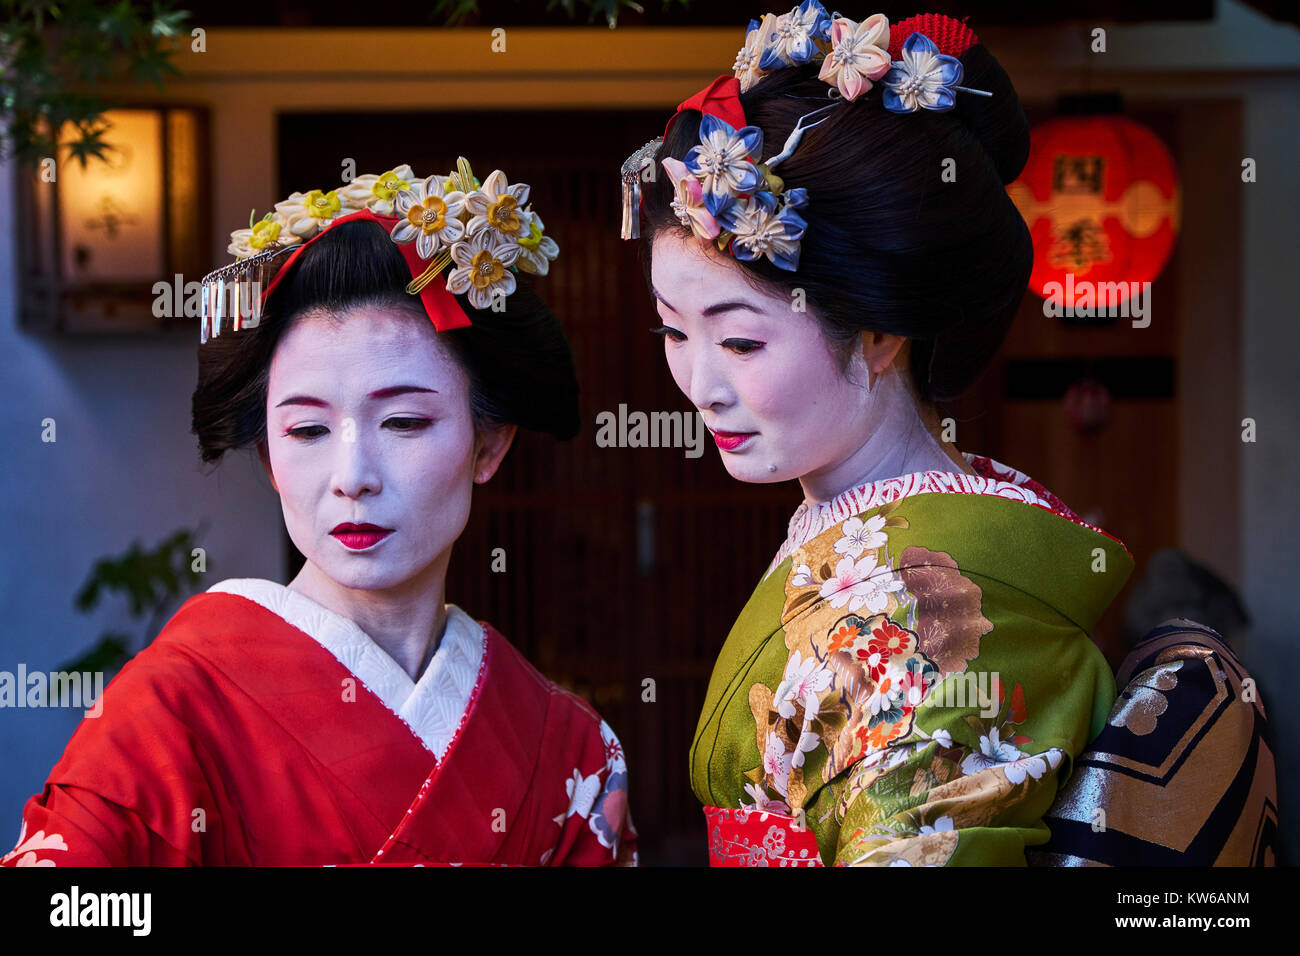 Le Japon, l'île de Honshu, région du Kansai, Kyoto, Gion, quartier de Geisha Photo Stock